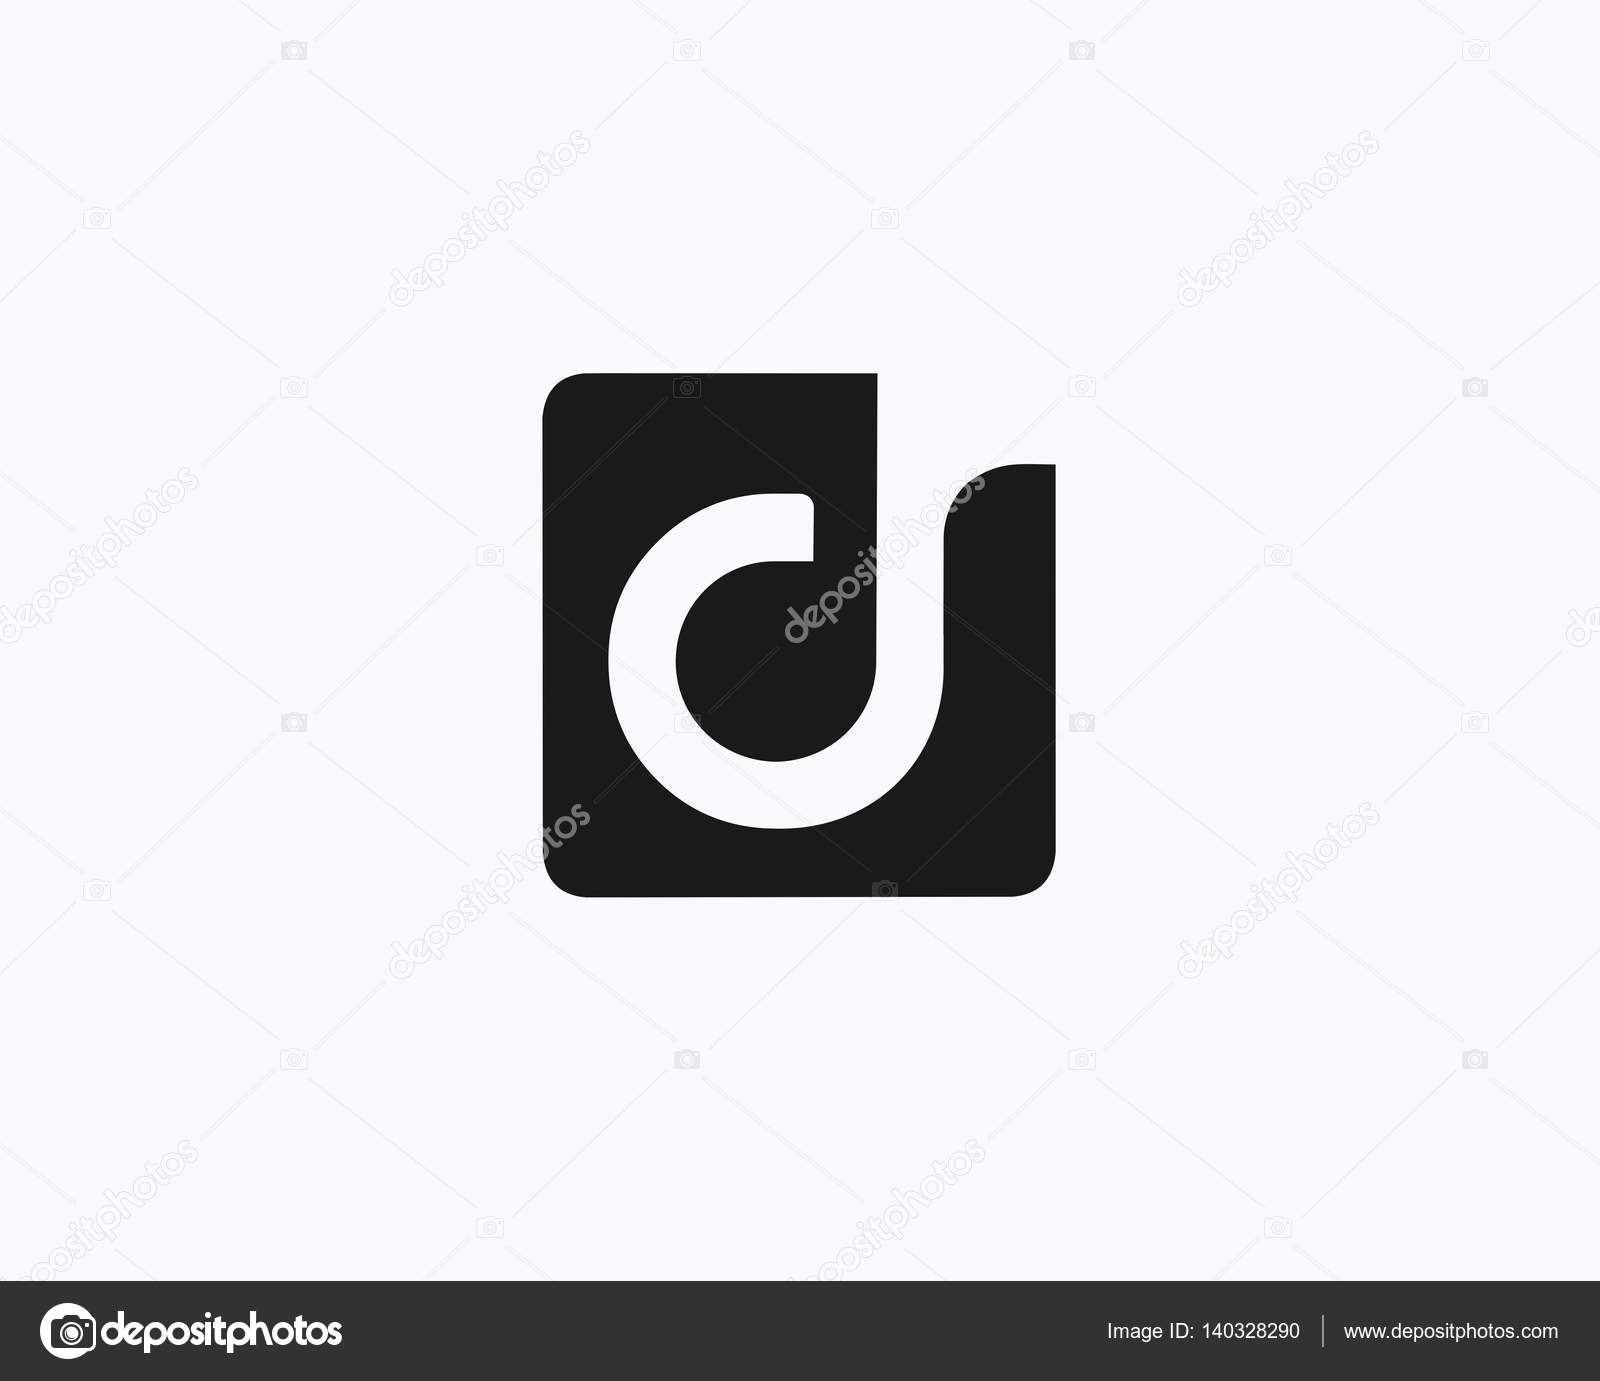 Letter d logo design abstract logo icon design template stock letter d logo design abstract logo icon design template stock photo thecheapjerseys Image collections